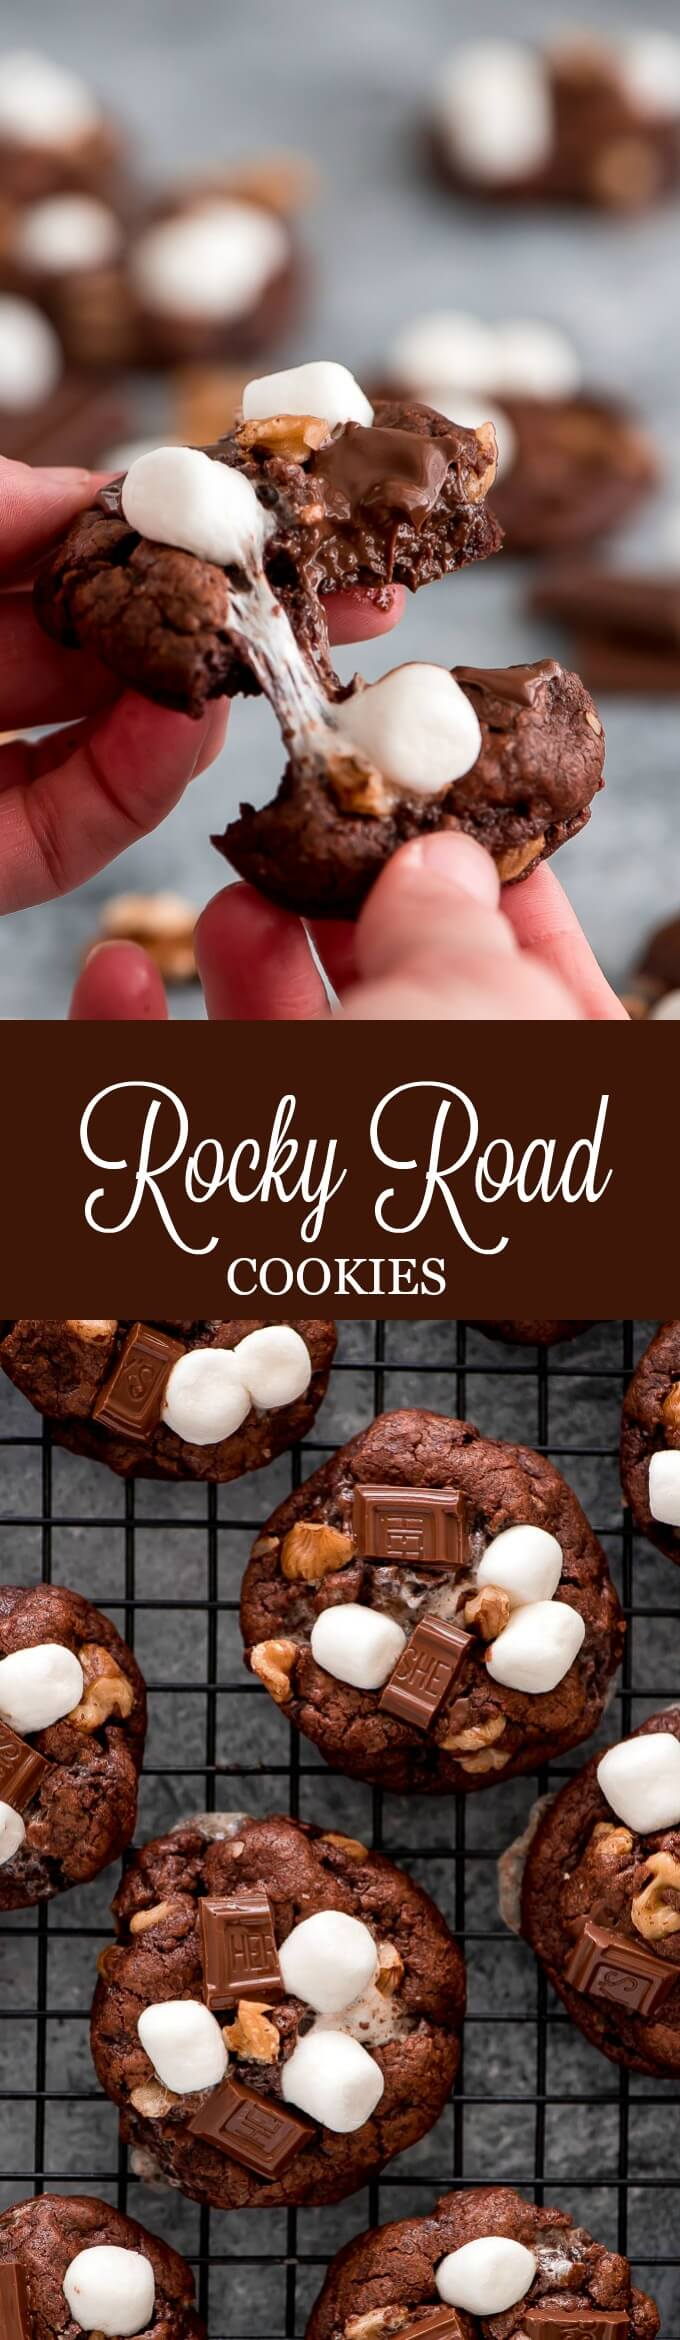 Rocky Road Cookies are a chocolate lover's dream! Loaded with melted chocolate, cocoa powder, and filled with chocolate chunks, marshmallows, and walnuts.